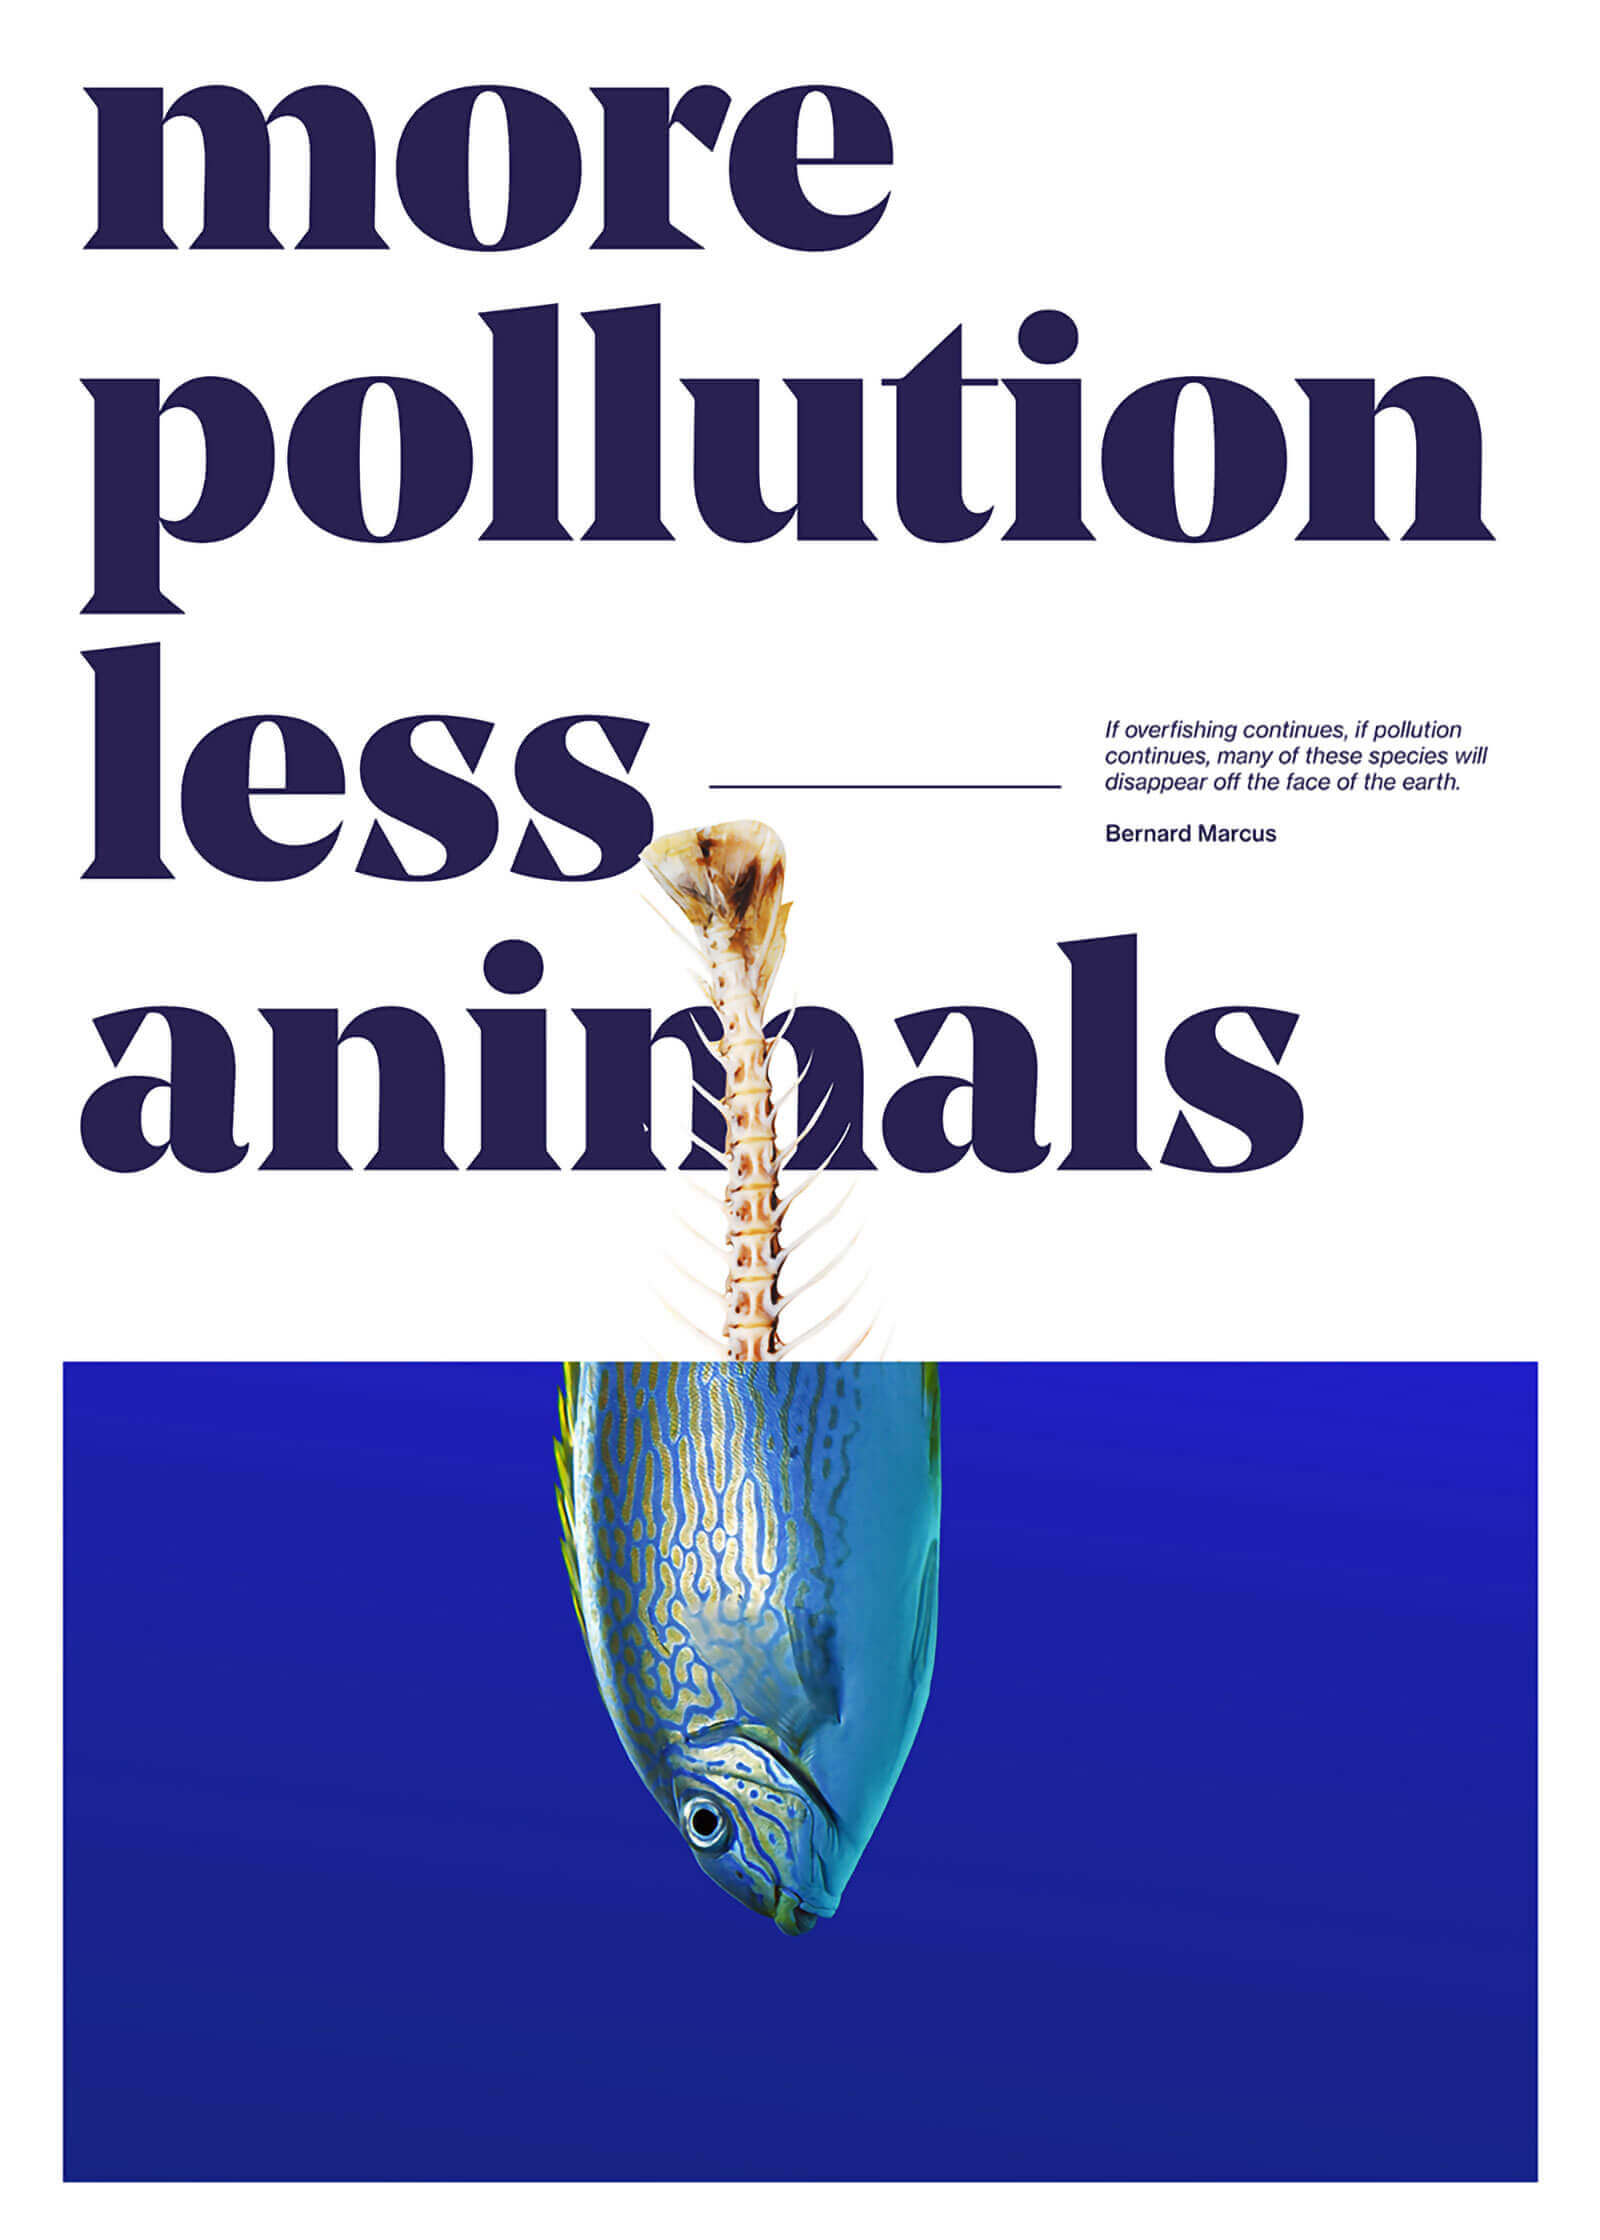 Social Poster - More pollution less animals